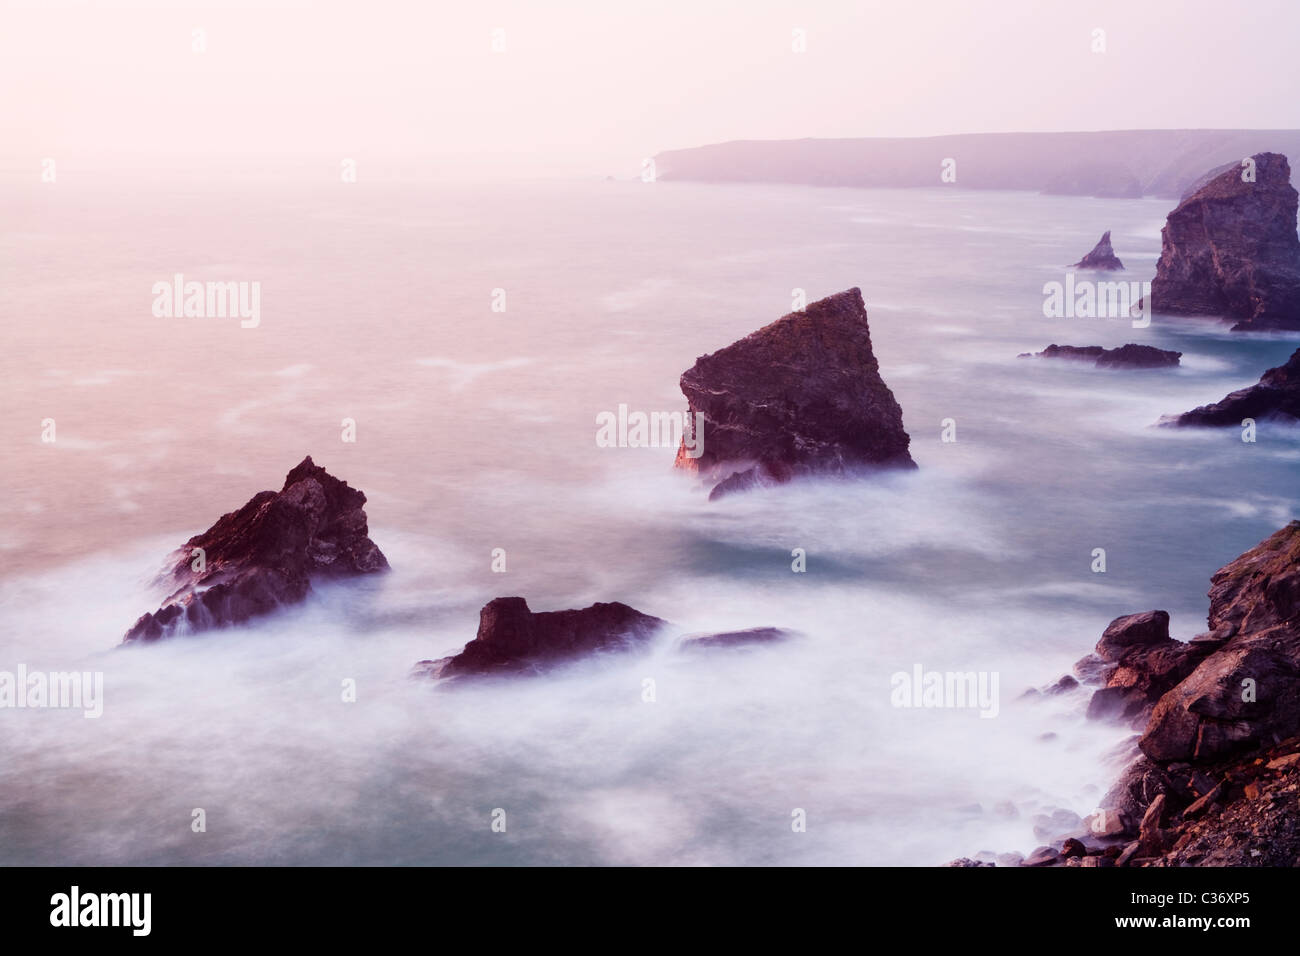 Bedruthan Steps, Cornwall, UK. - Stock Image